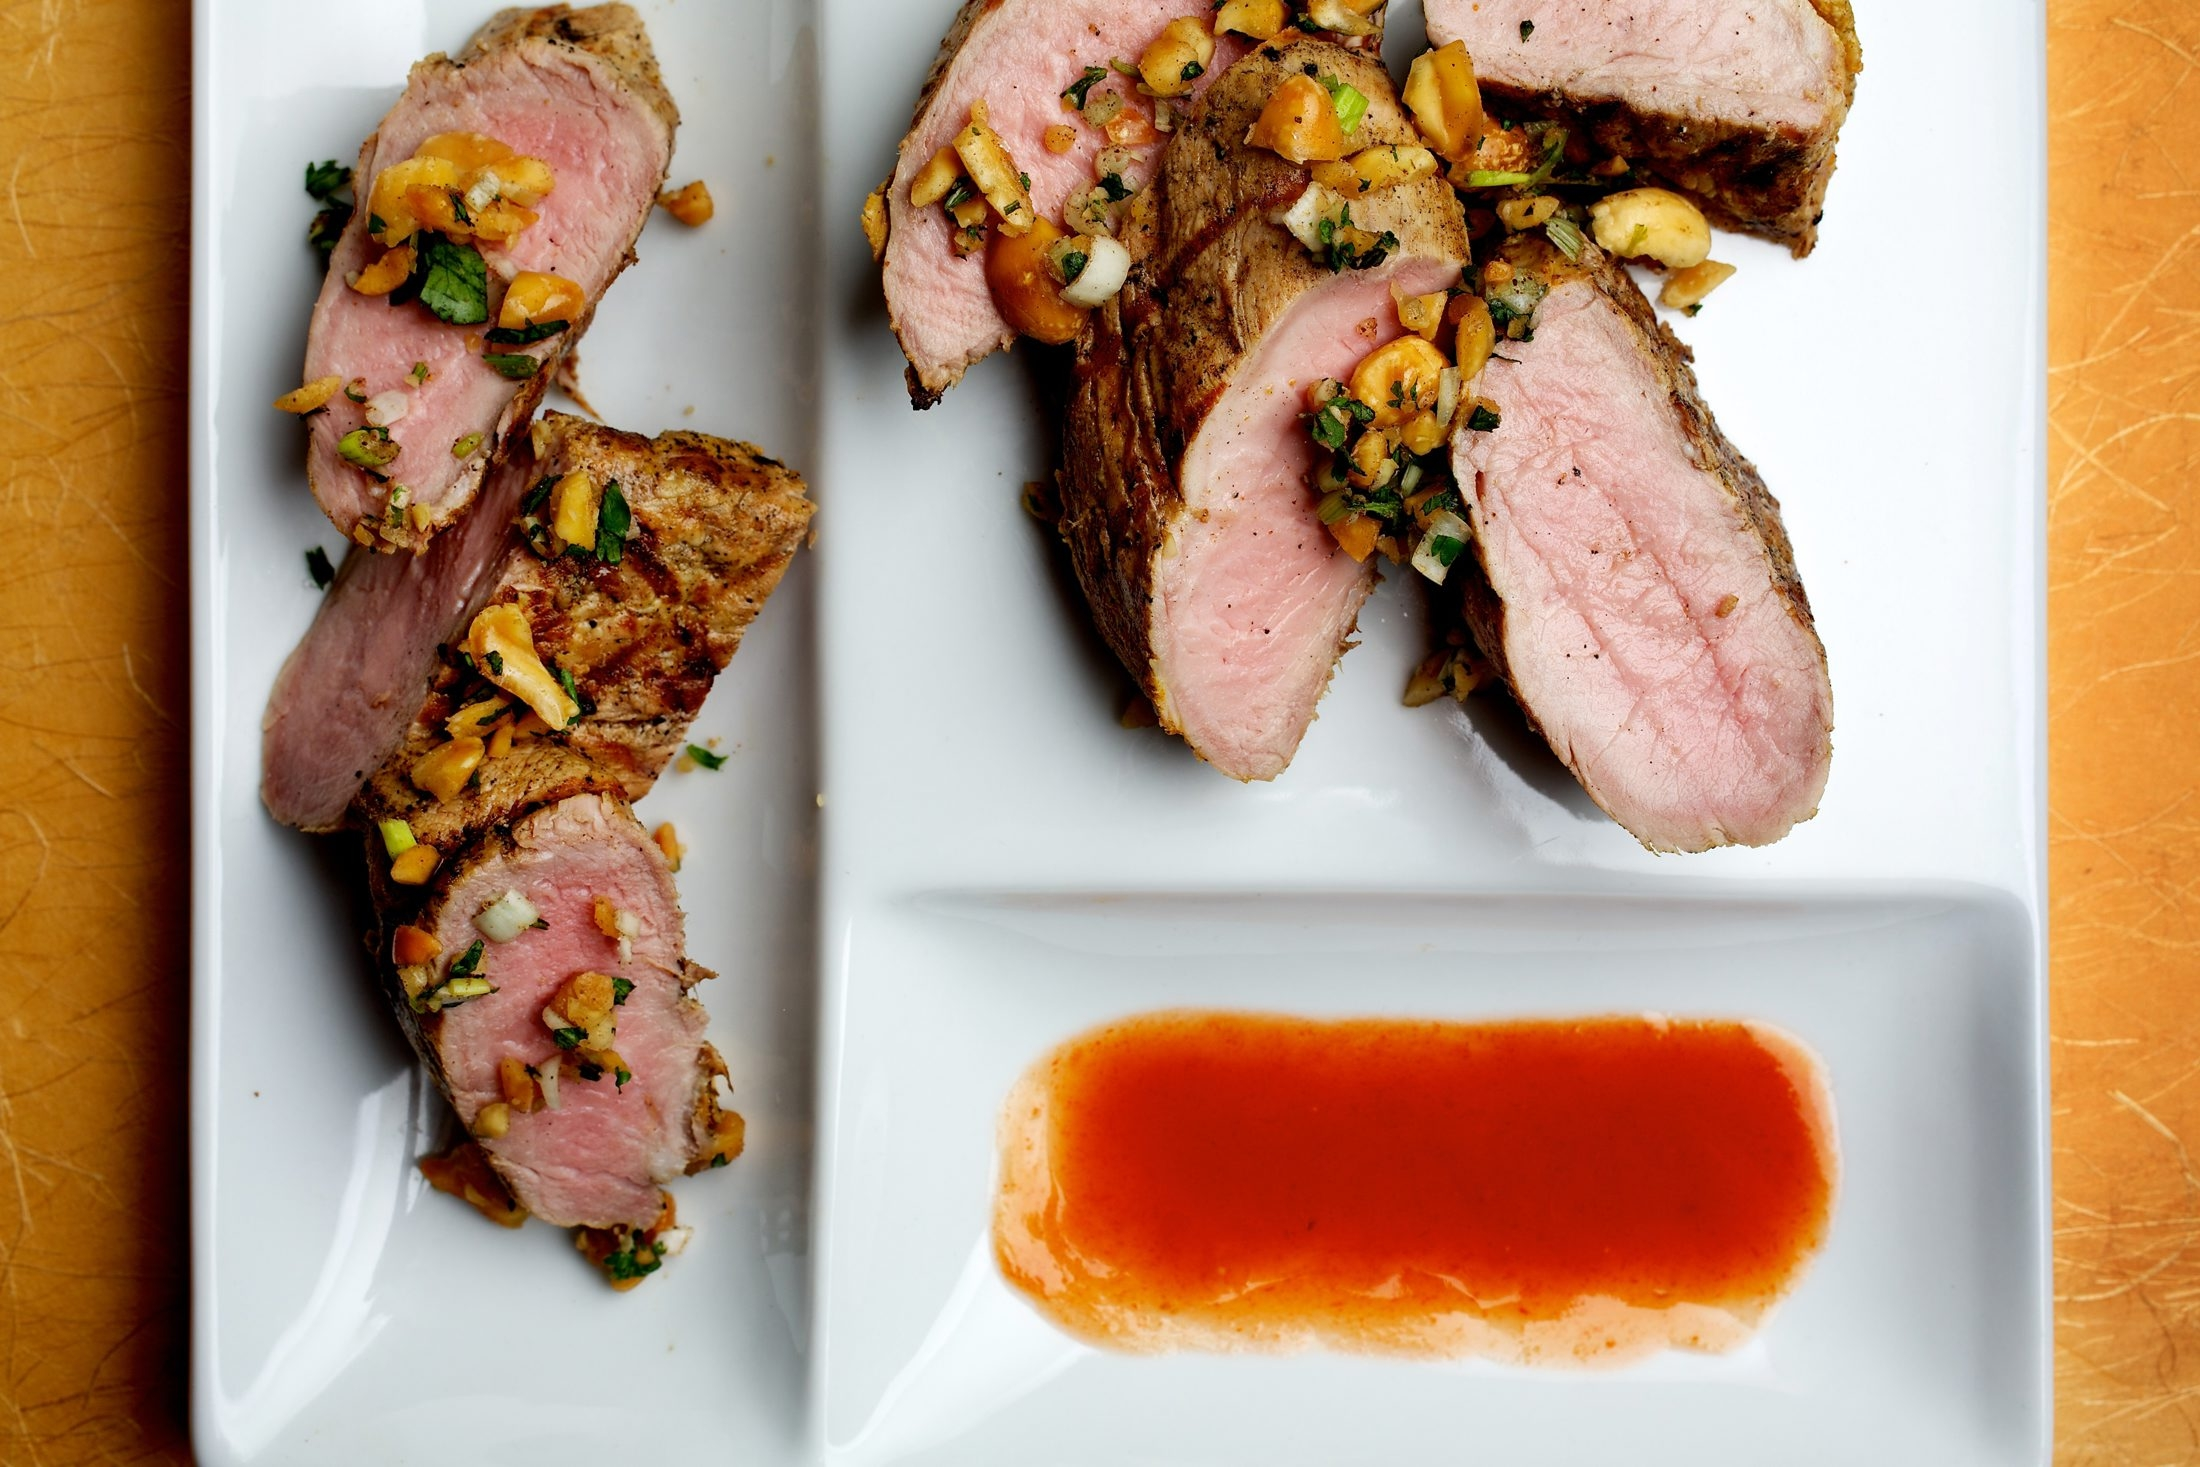 The relish adds a crunch to the silky texture of marinated pork.